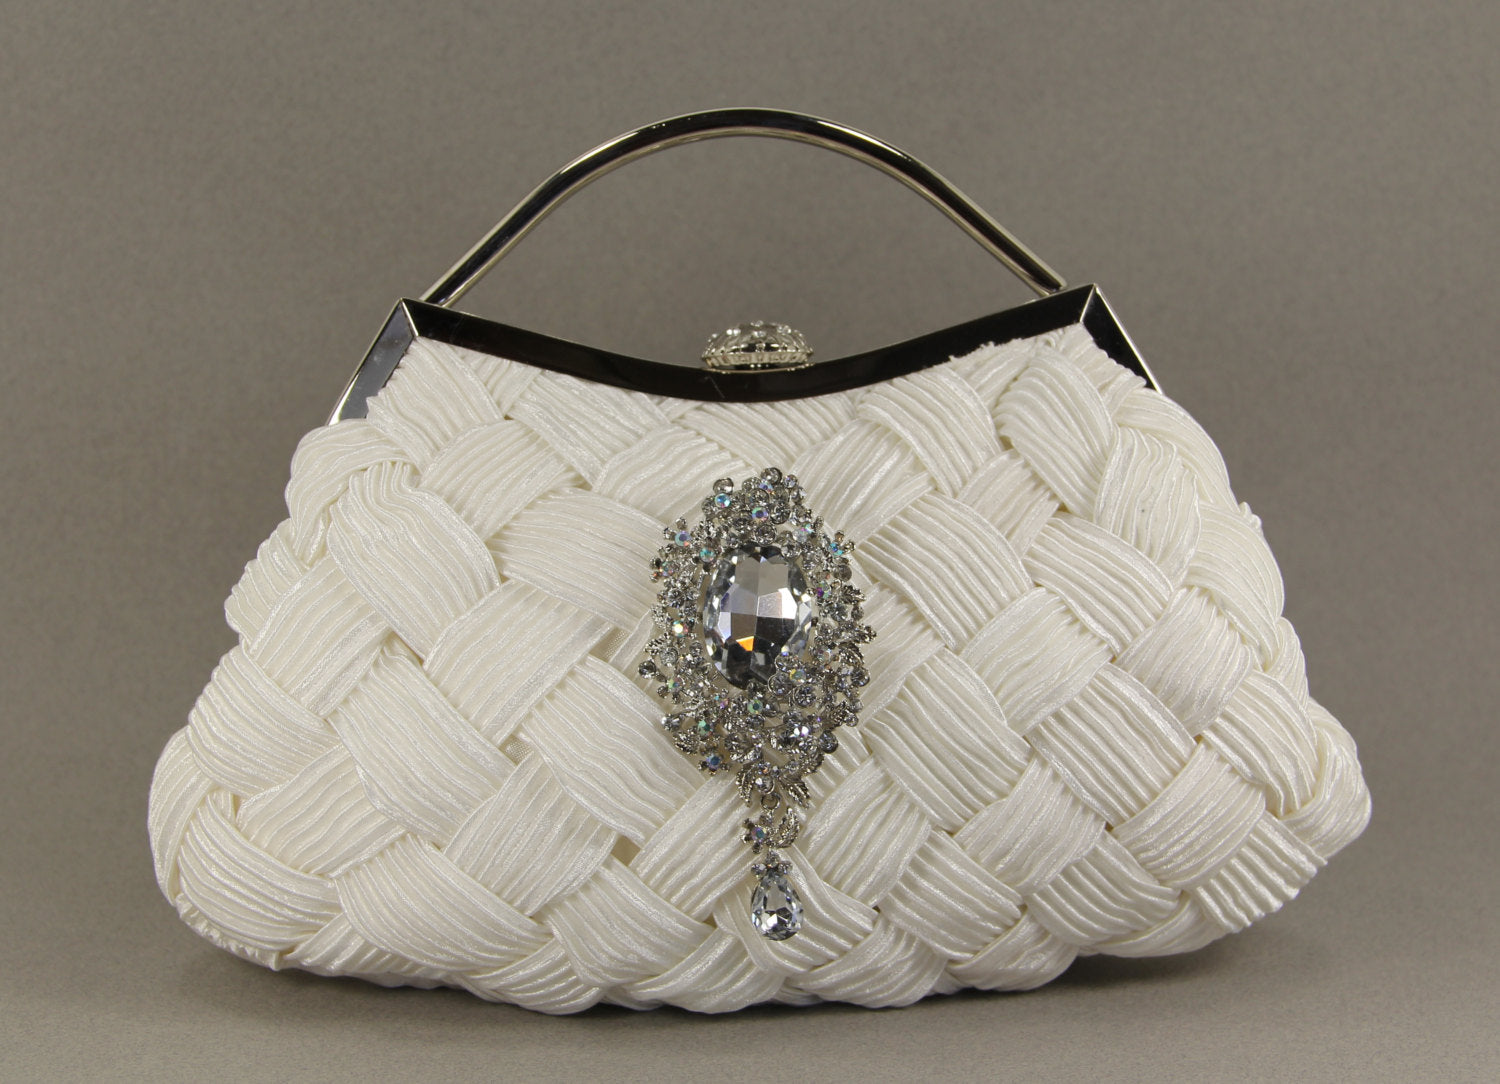 Off White Chiffon Wristlet Clutch Purse with Swarovski Crystal Accent. Rhinestone Seashell clasp for beach theme wedding. The Love Story